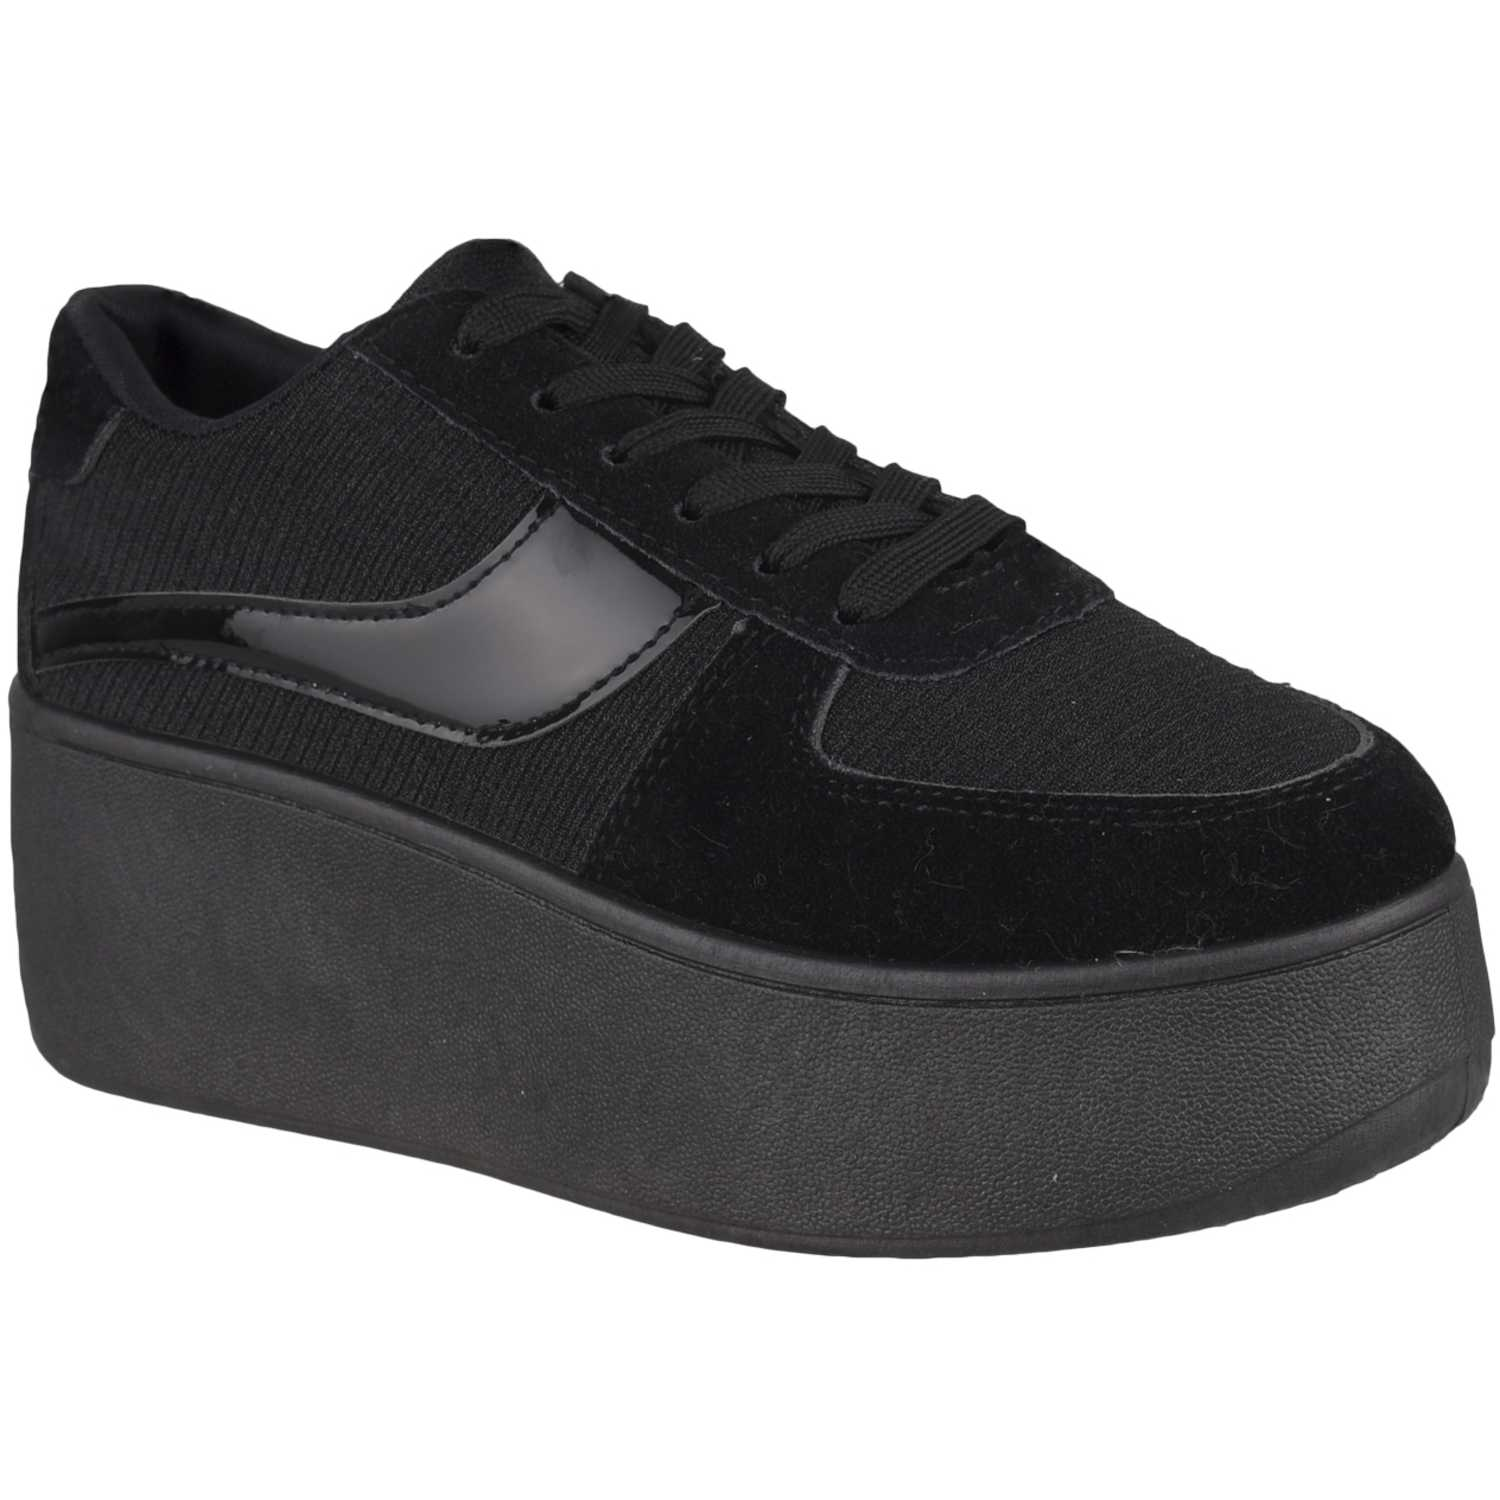 Platanitos zc 2383 Negro Zapatillas Fashion